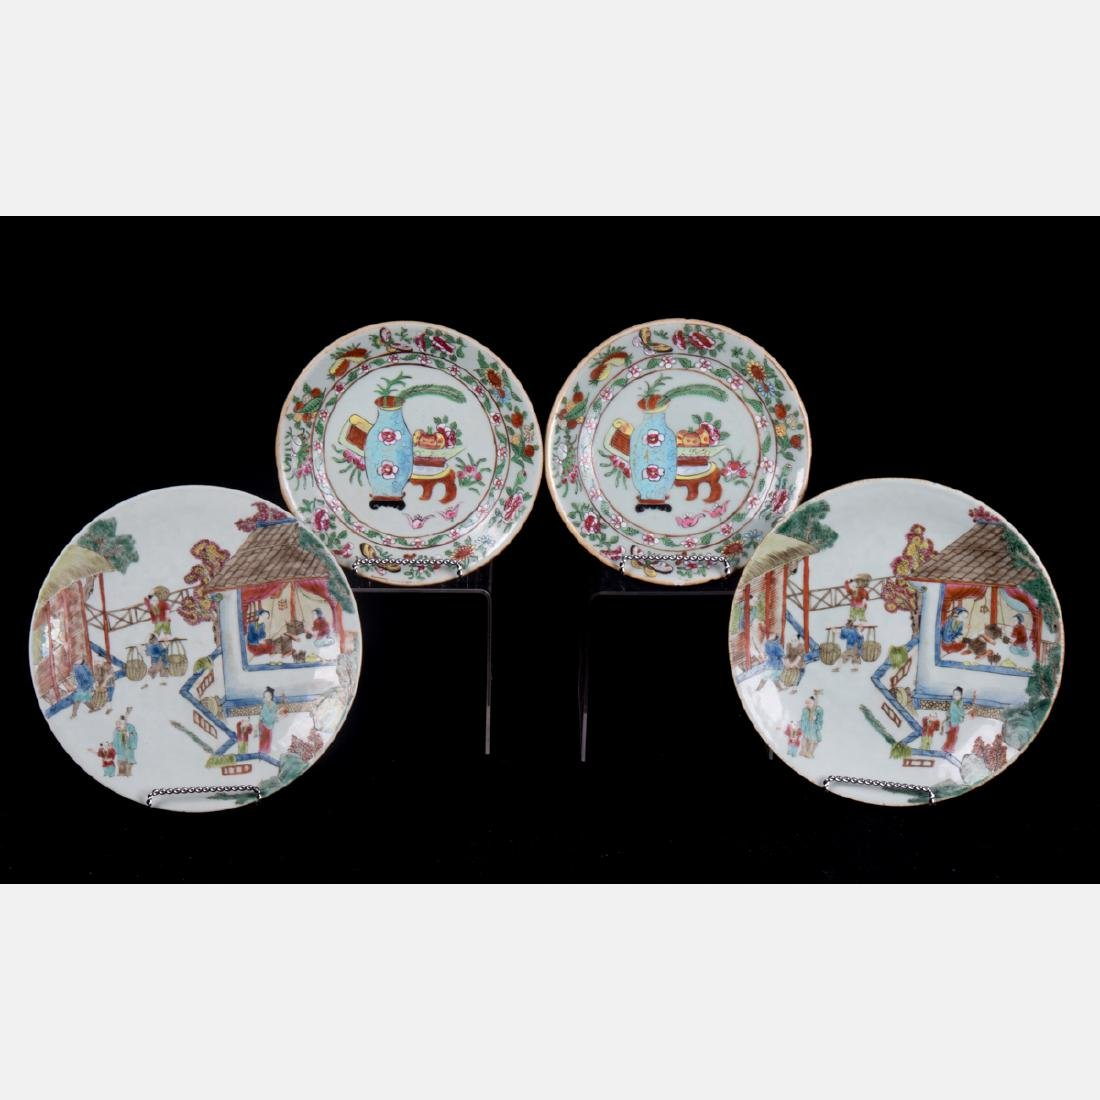 A Group of Four Chinese Famille Rose Porcelain Plates,